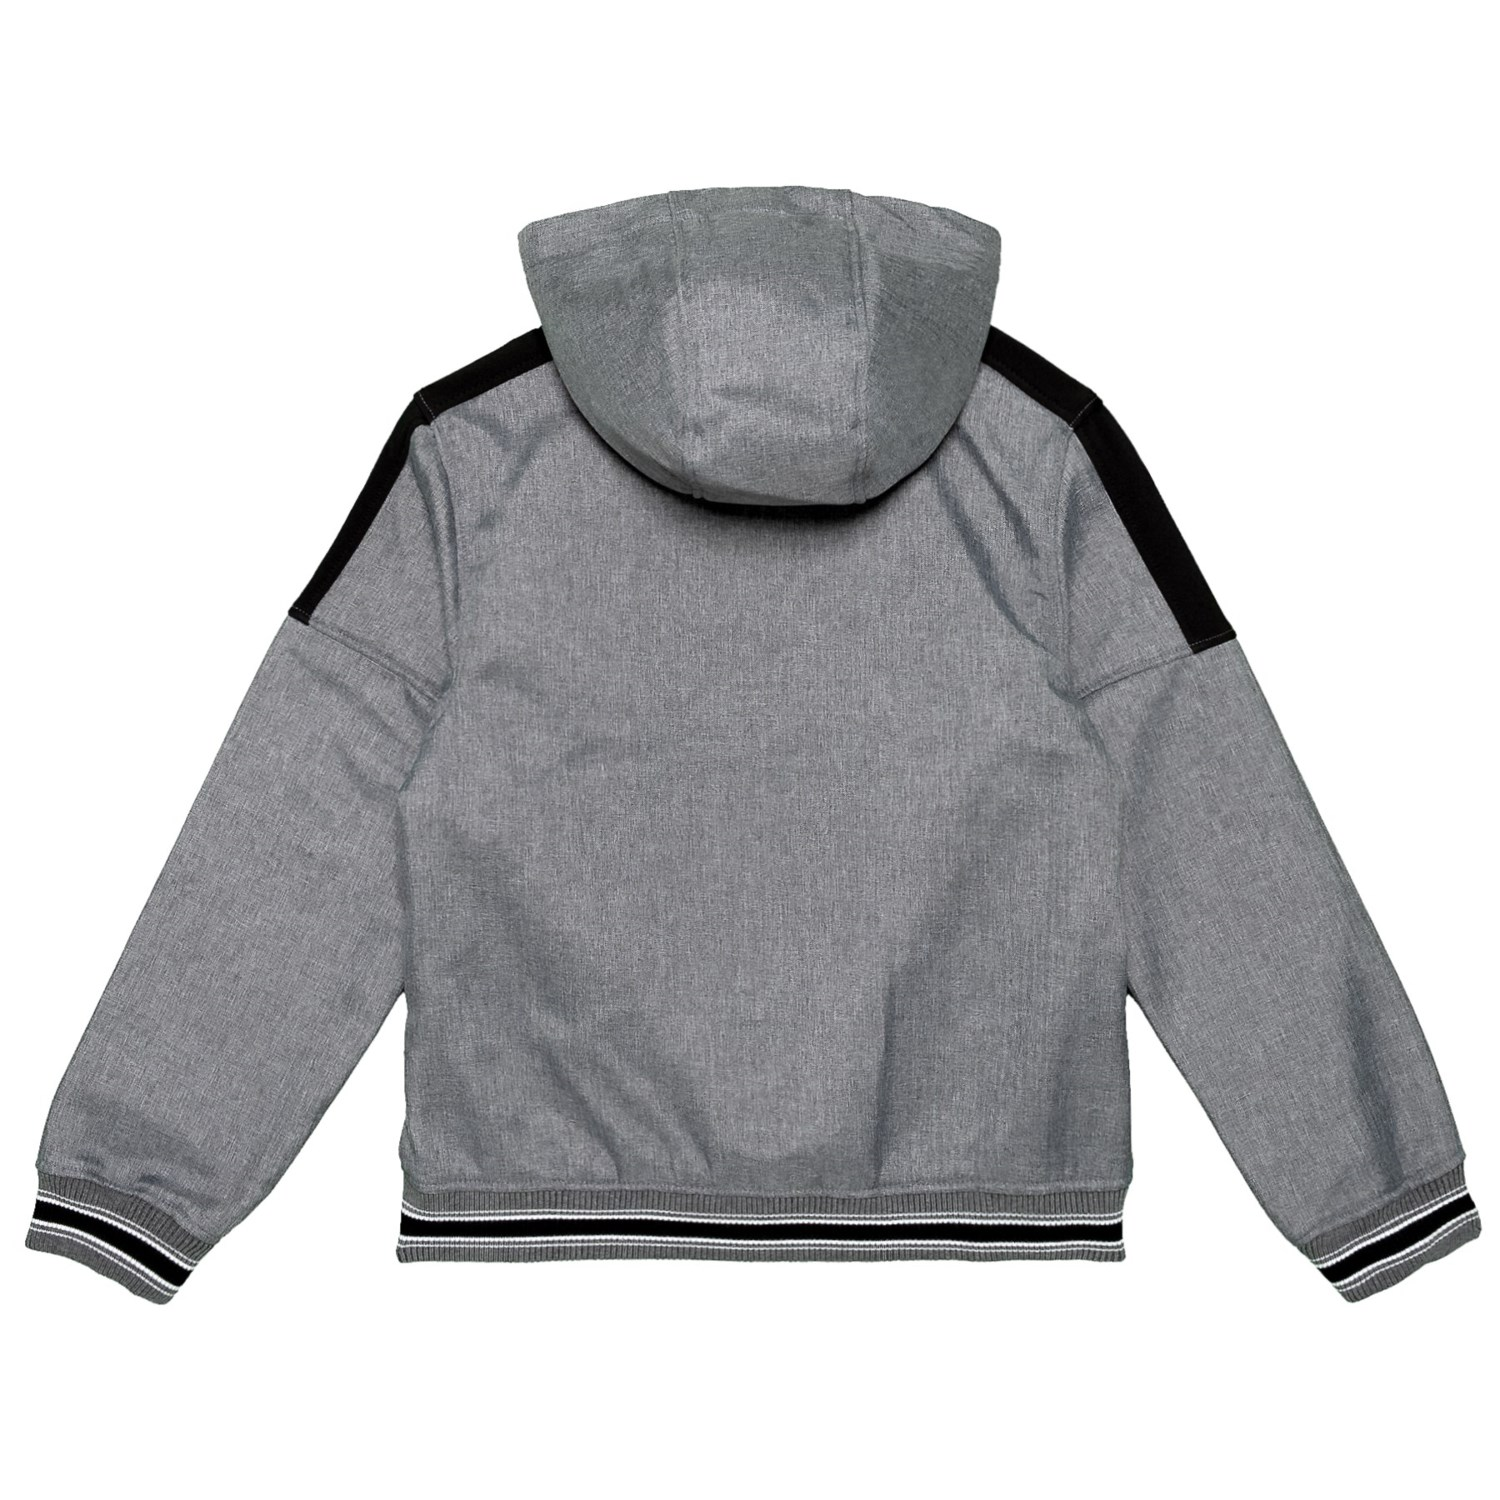 3f4f846ce Reebok Full-Zip Hooded Jacket - Insulated (For Big Boys)